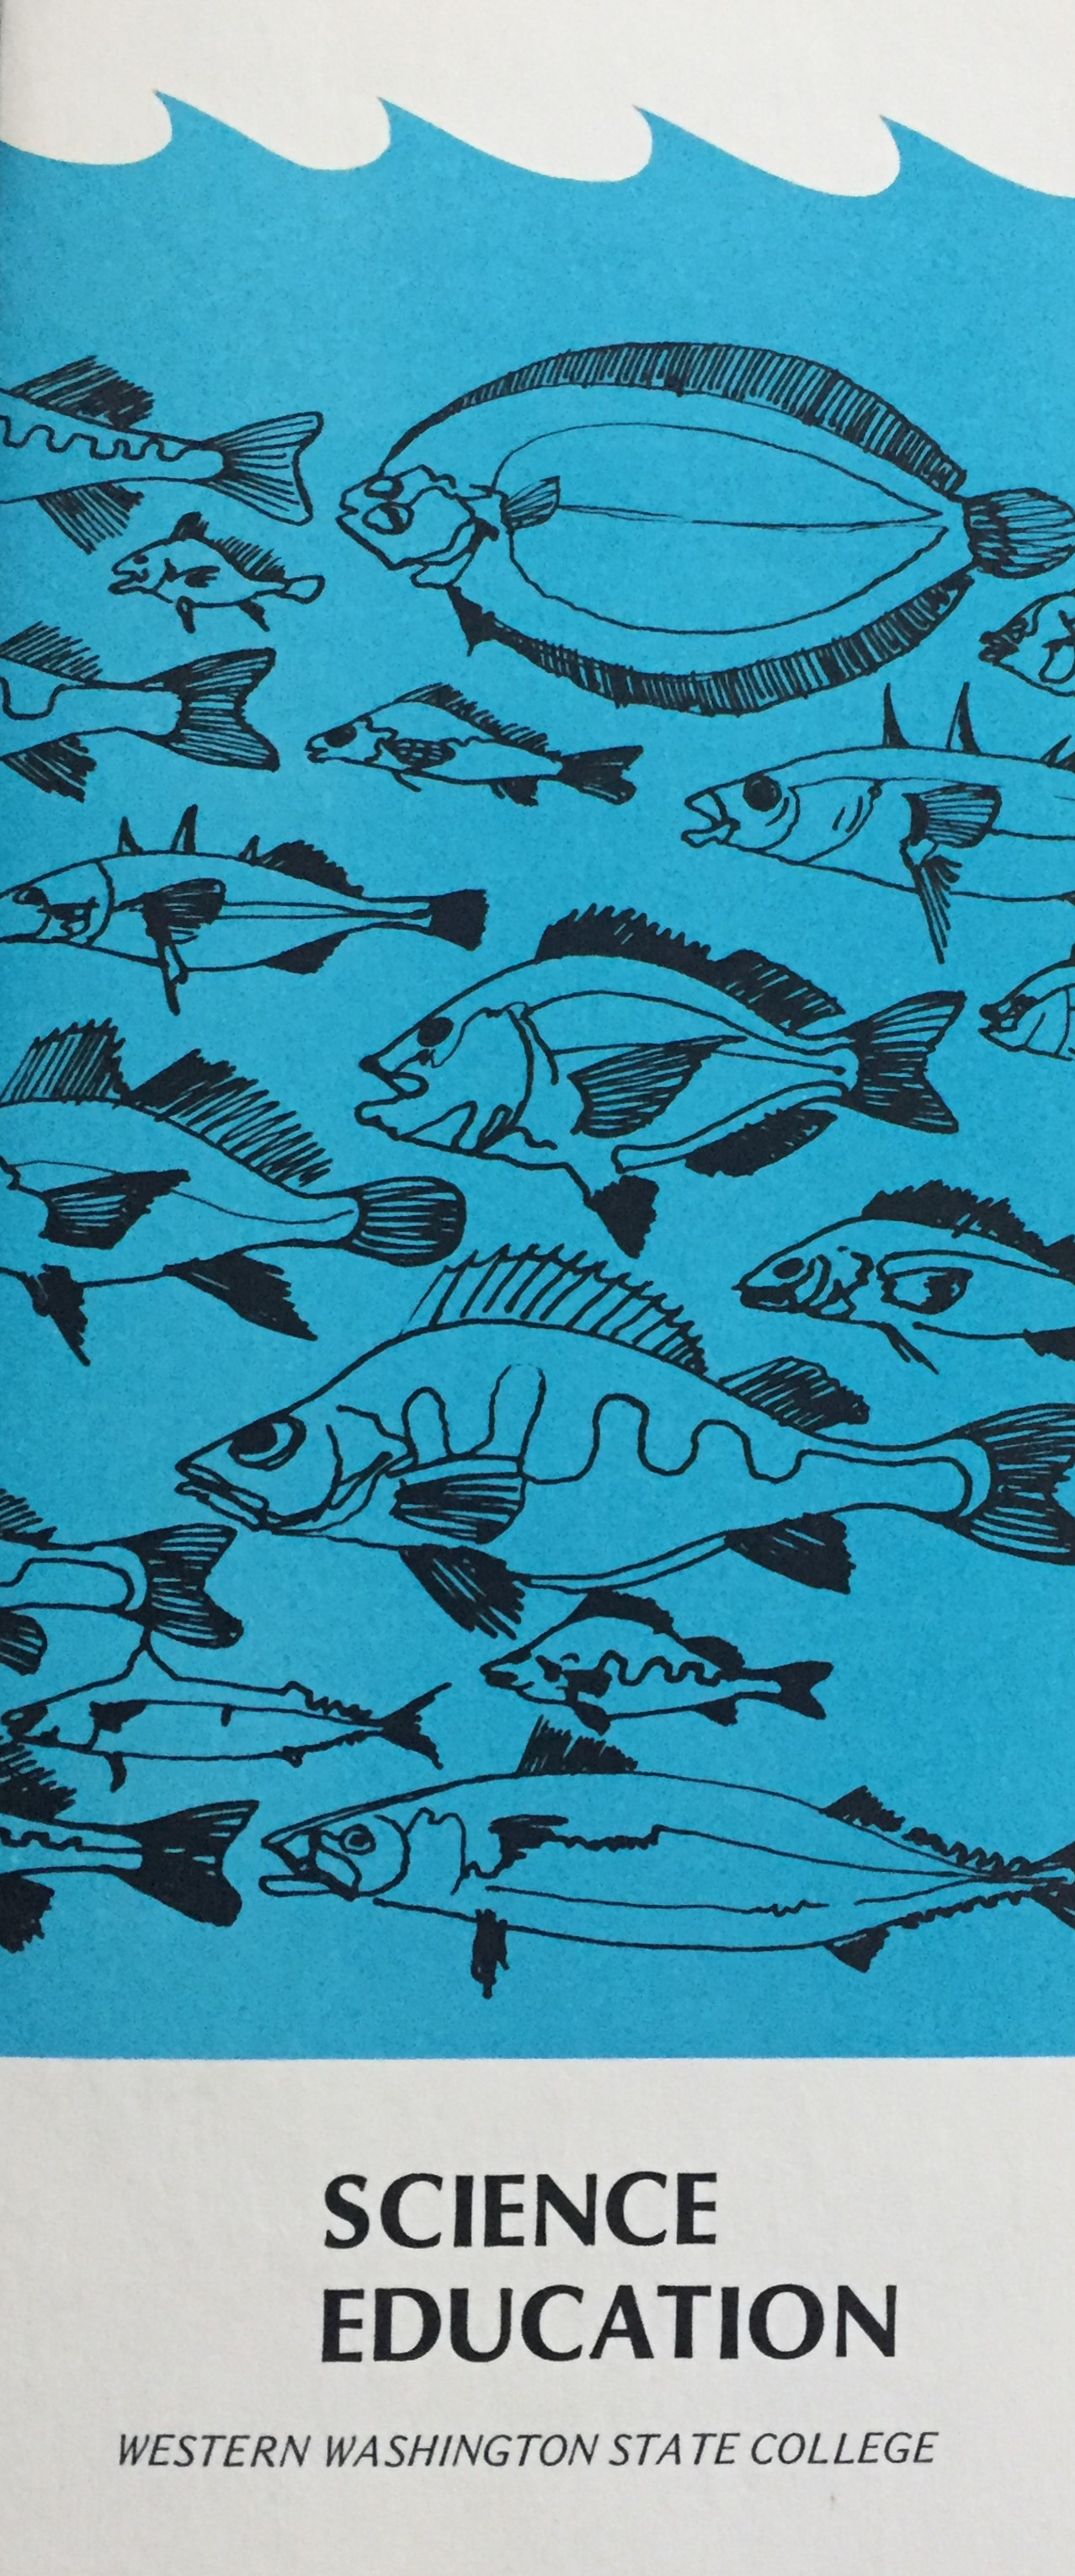 Picture of the original Science Education brocusre showing a line drawing of fish on a blue background